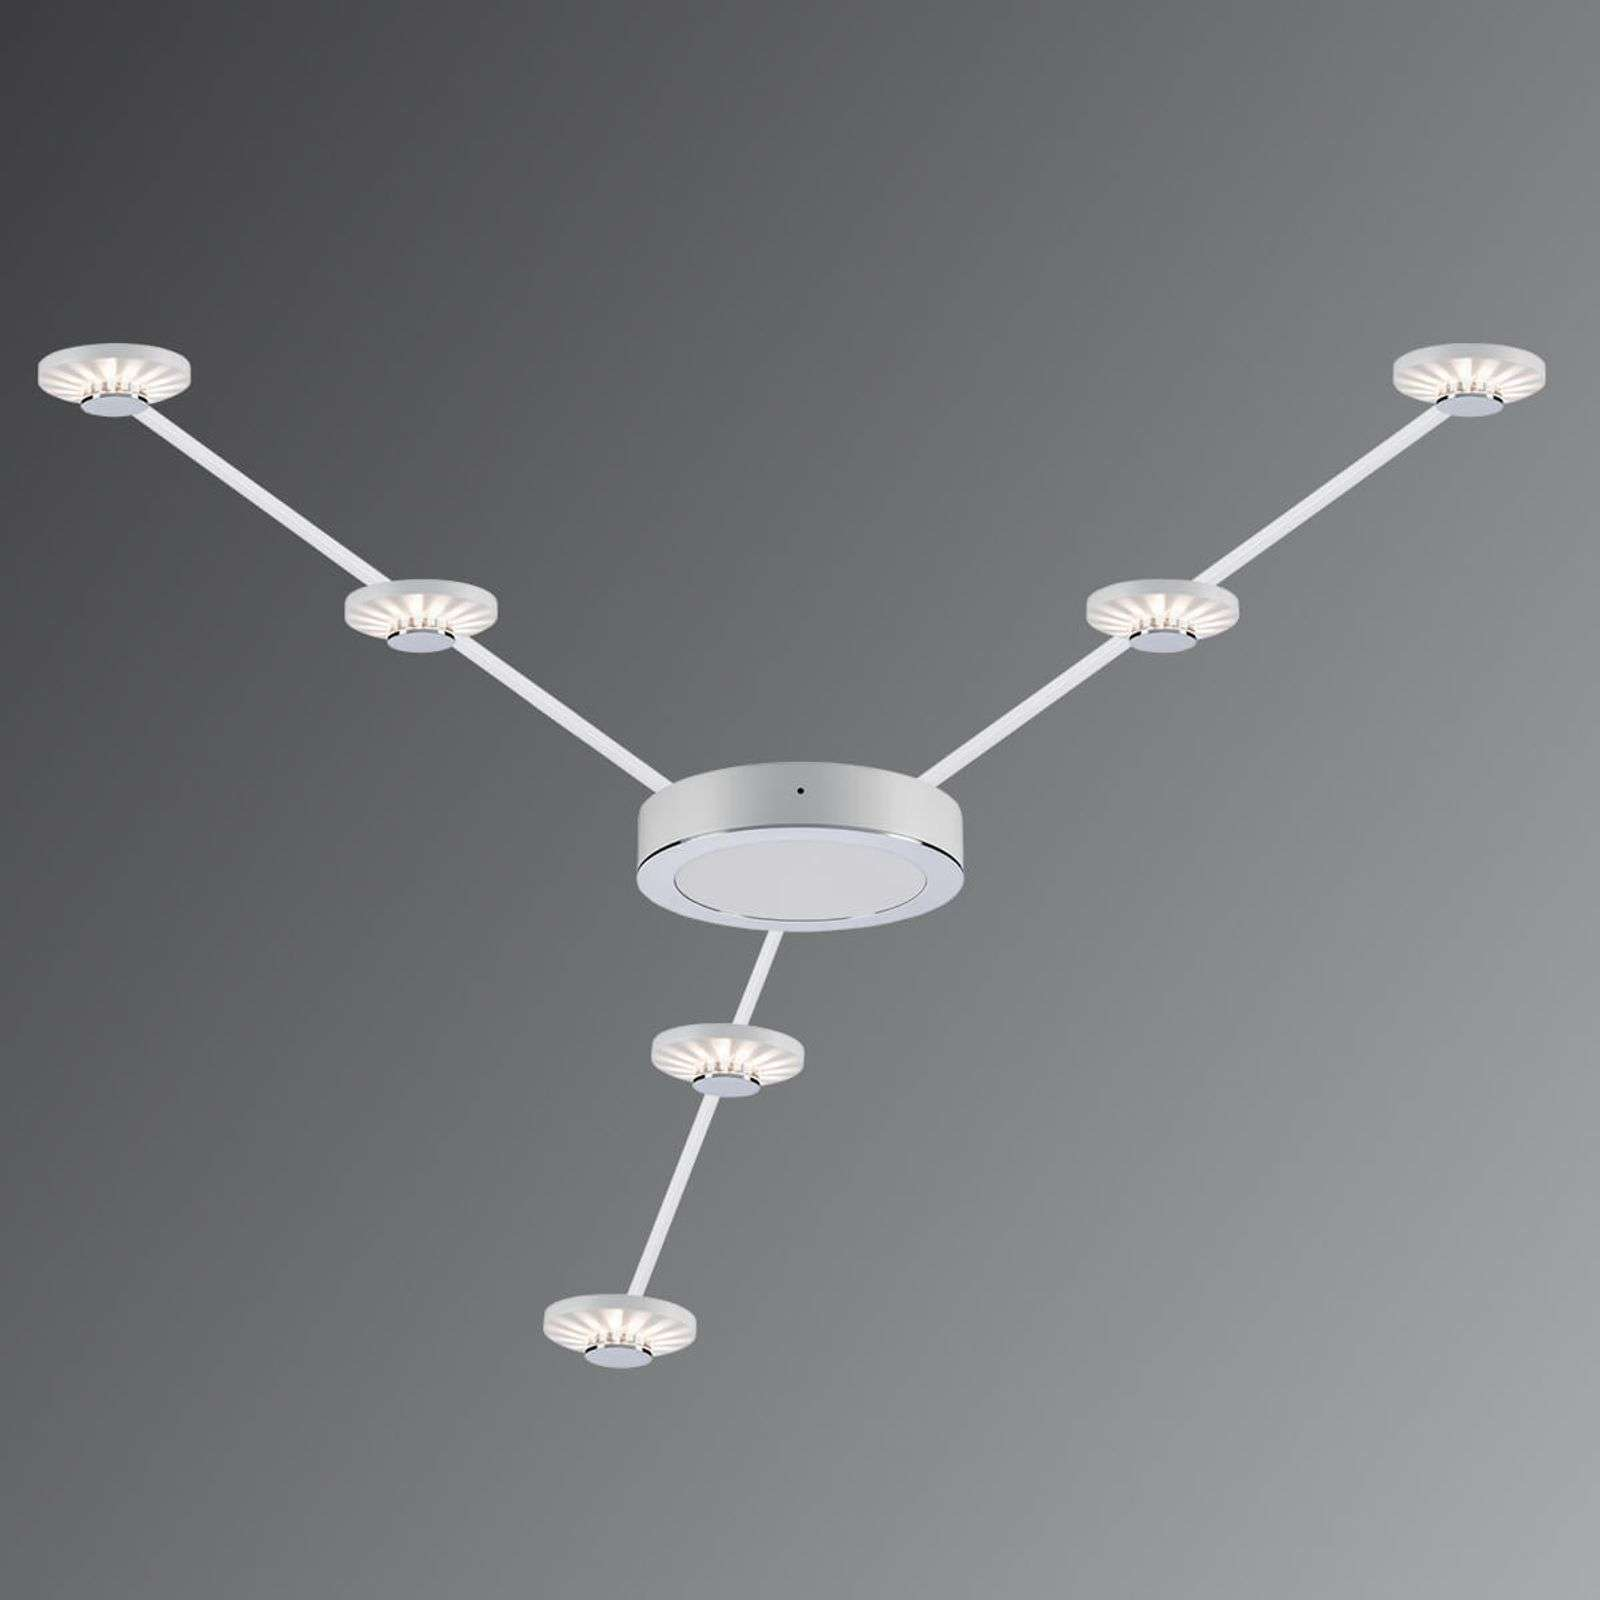 Set de 6 plafonniers LED Frill